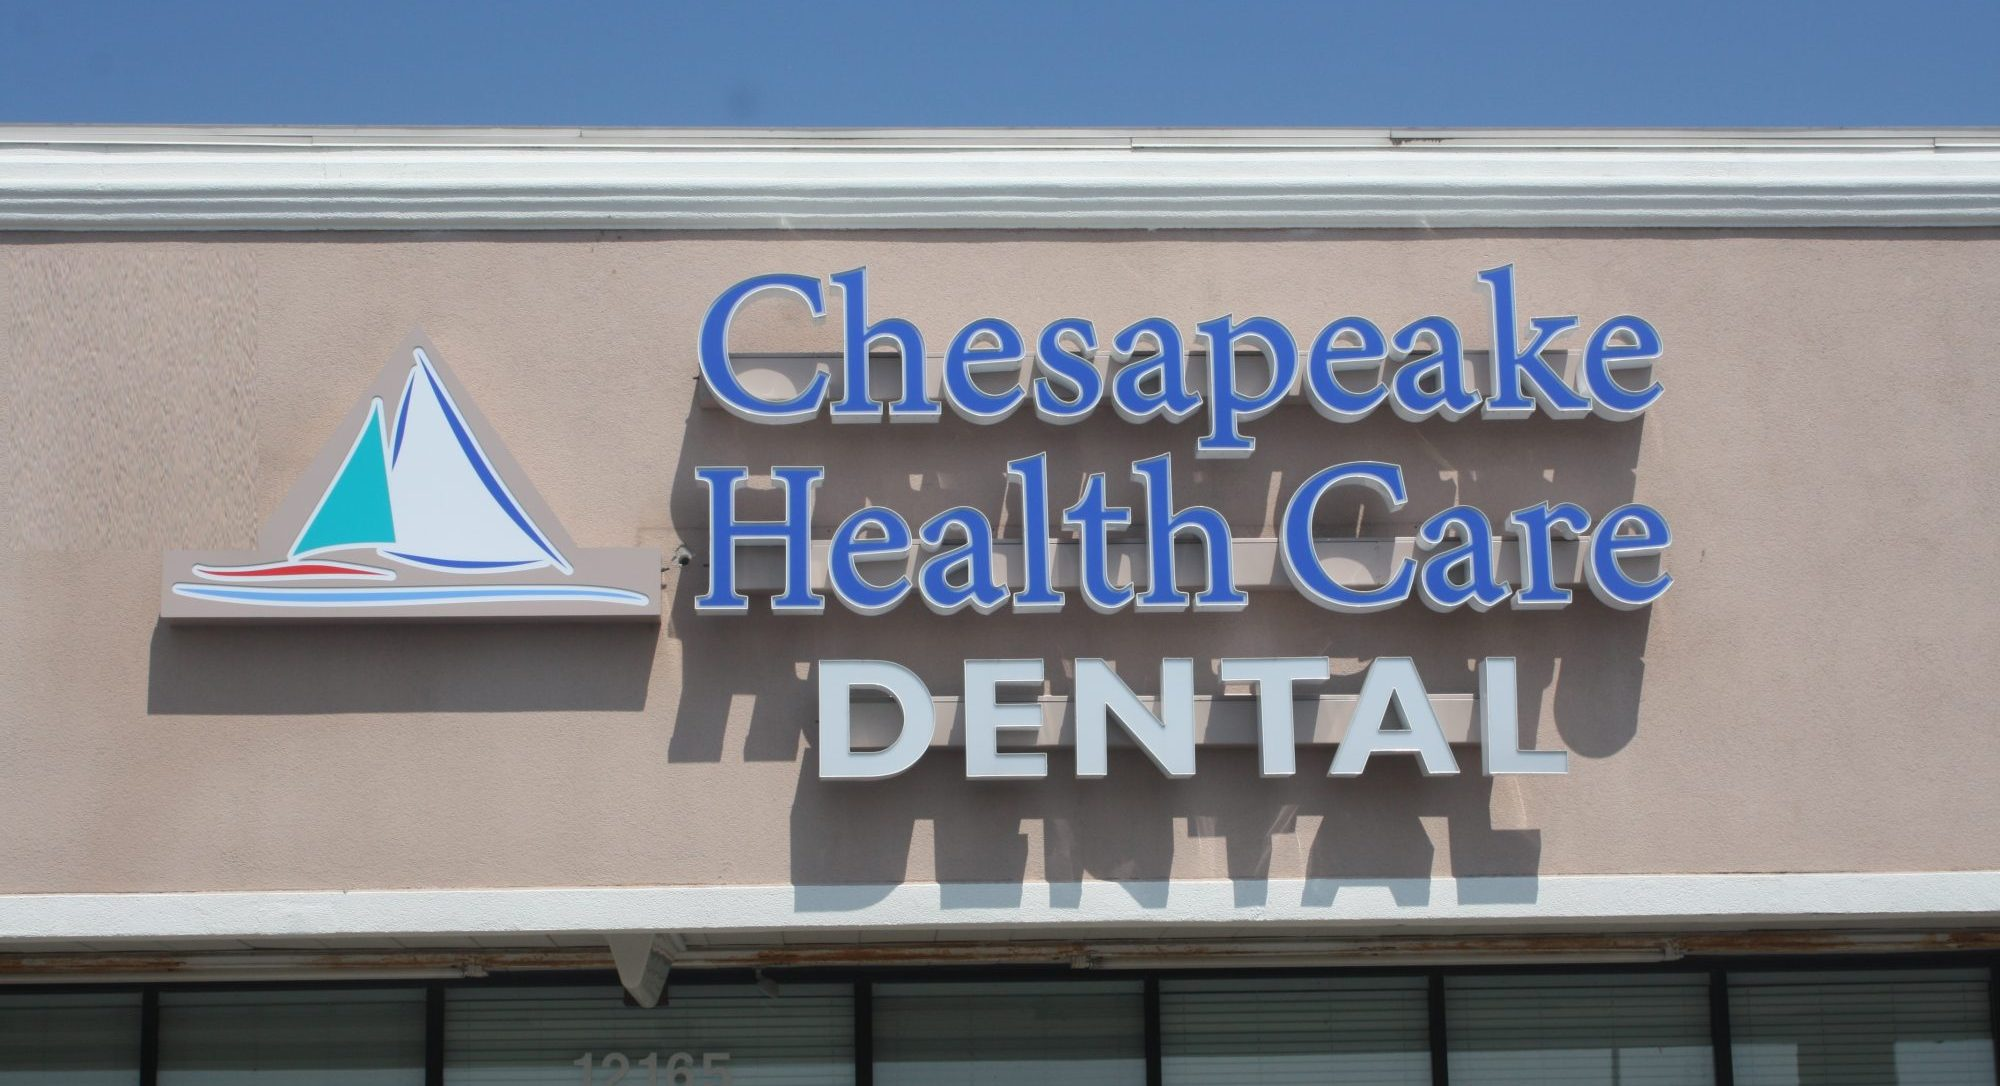 Chesapeake Health Care                             Department of Dentistry